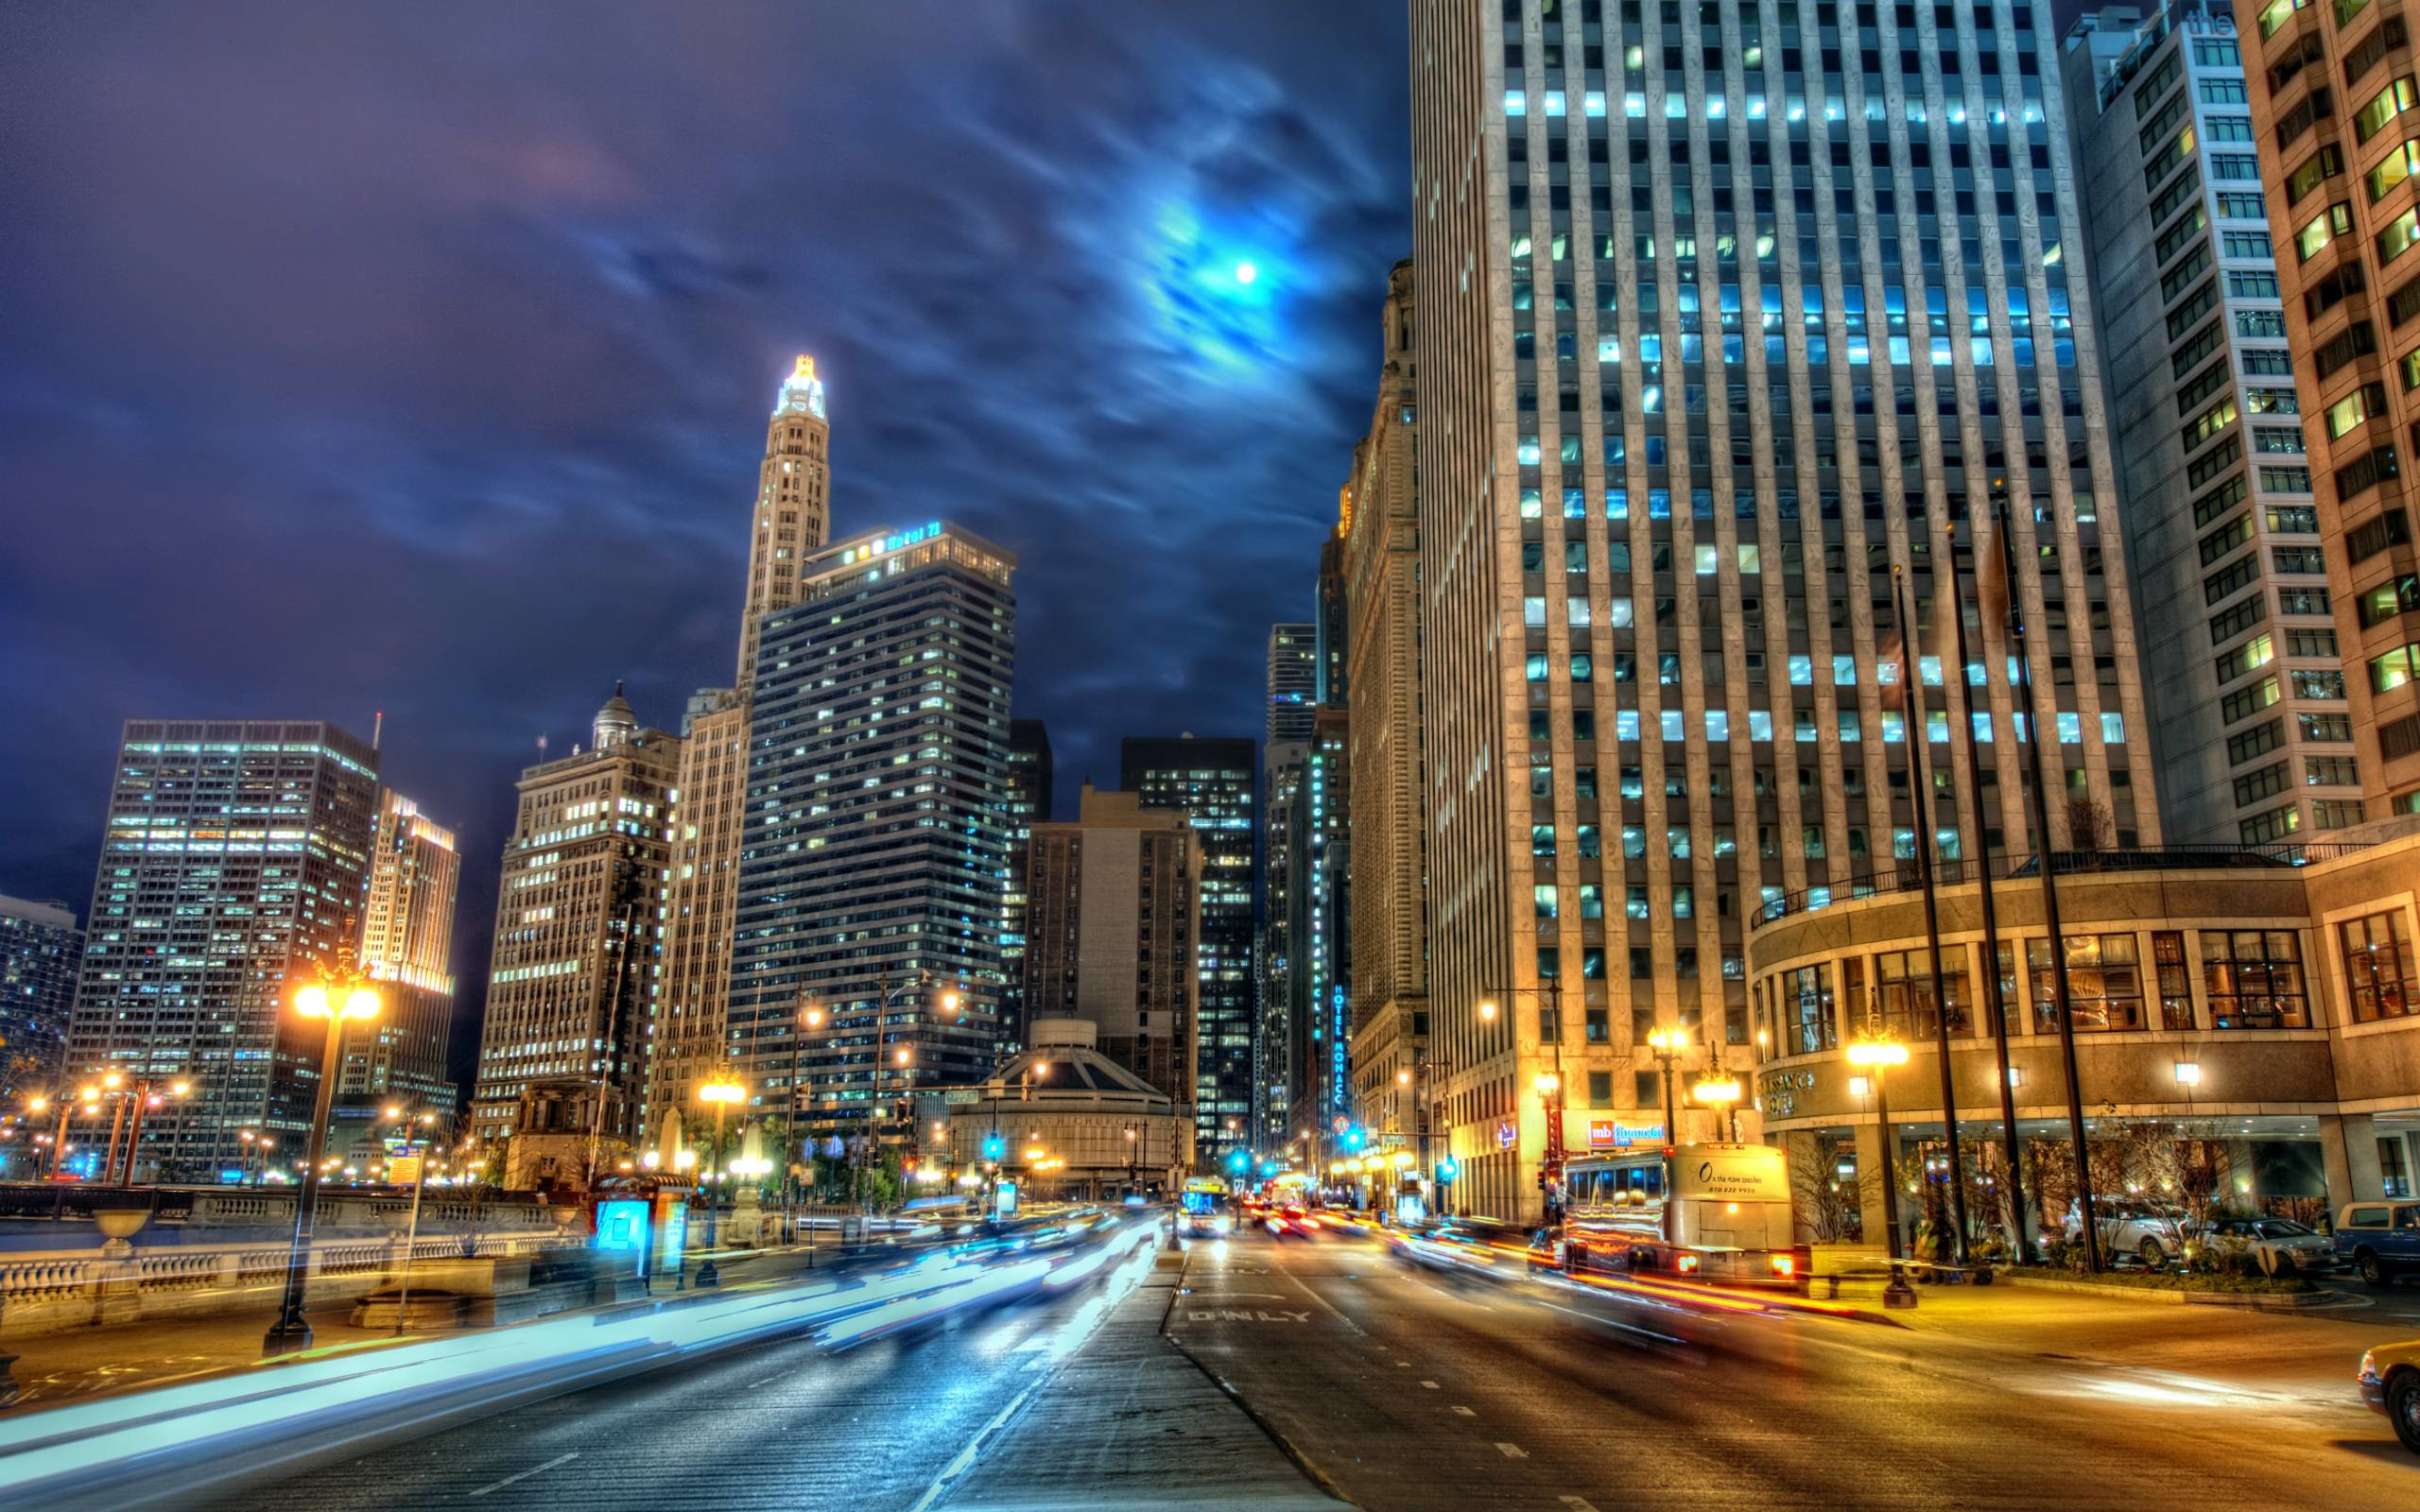 Must see Wallpaper Mac Chicago - 735404-wallpaper-chicago-2560x1600-for-macbook  Picture_273810.jpg